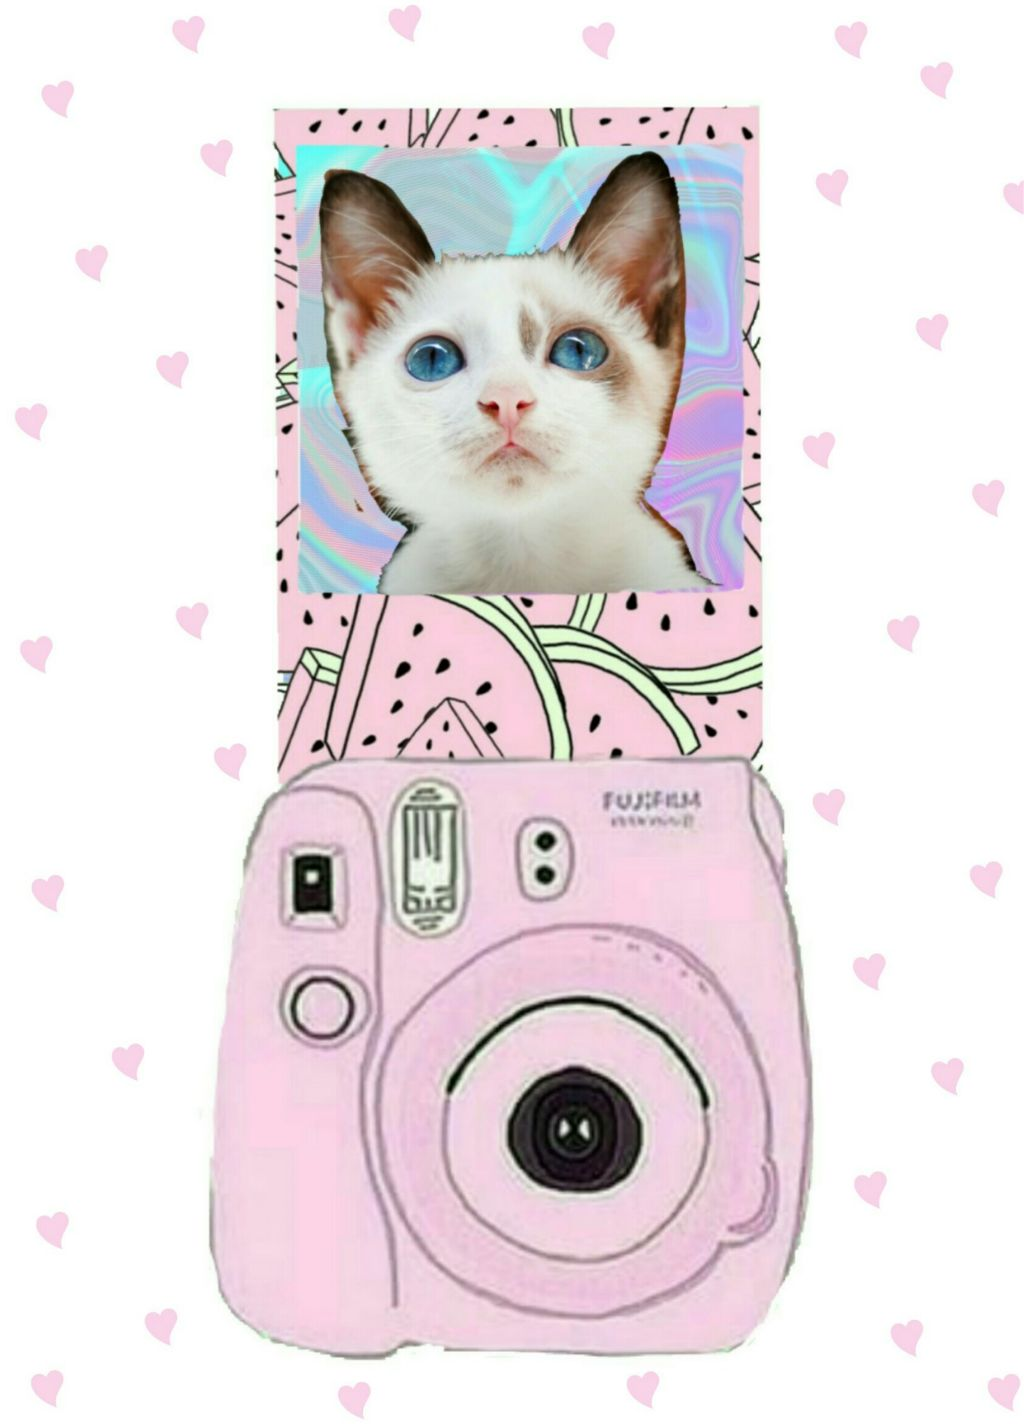 #FreeToEdit  #polaroid #cat #pink #myedit  @pa thanks for featuring my edit in Smash Hits